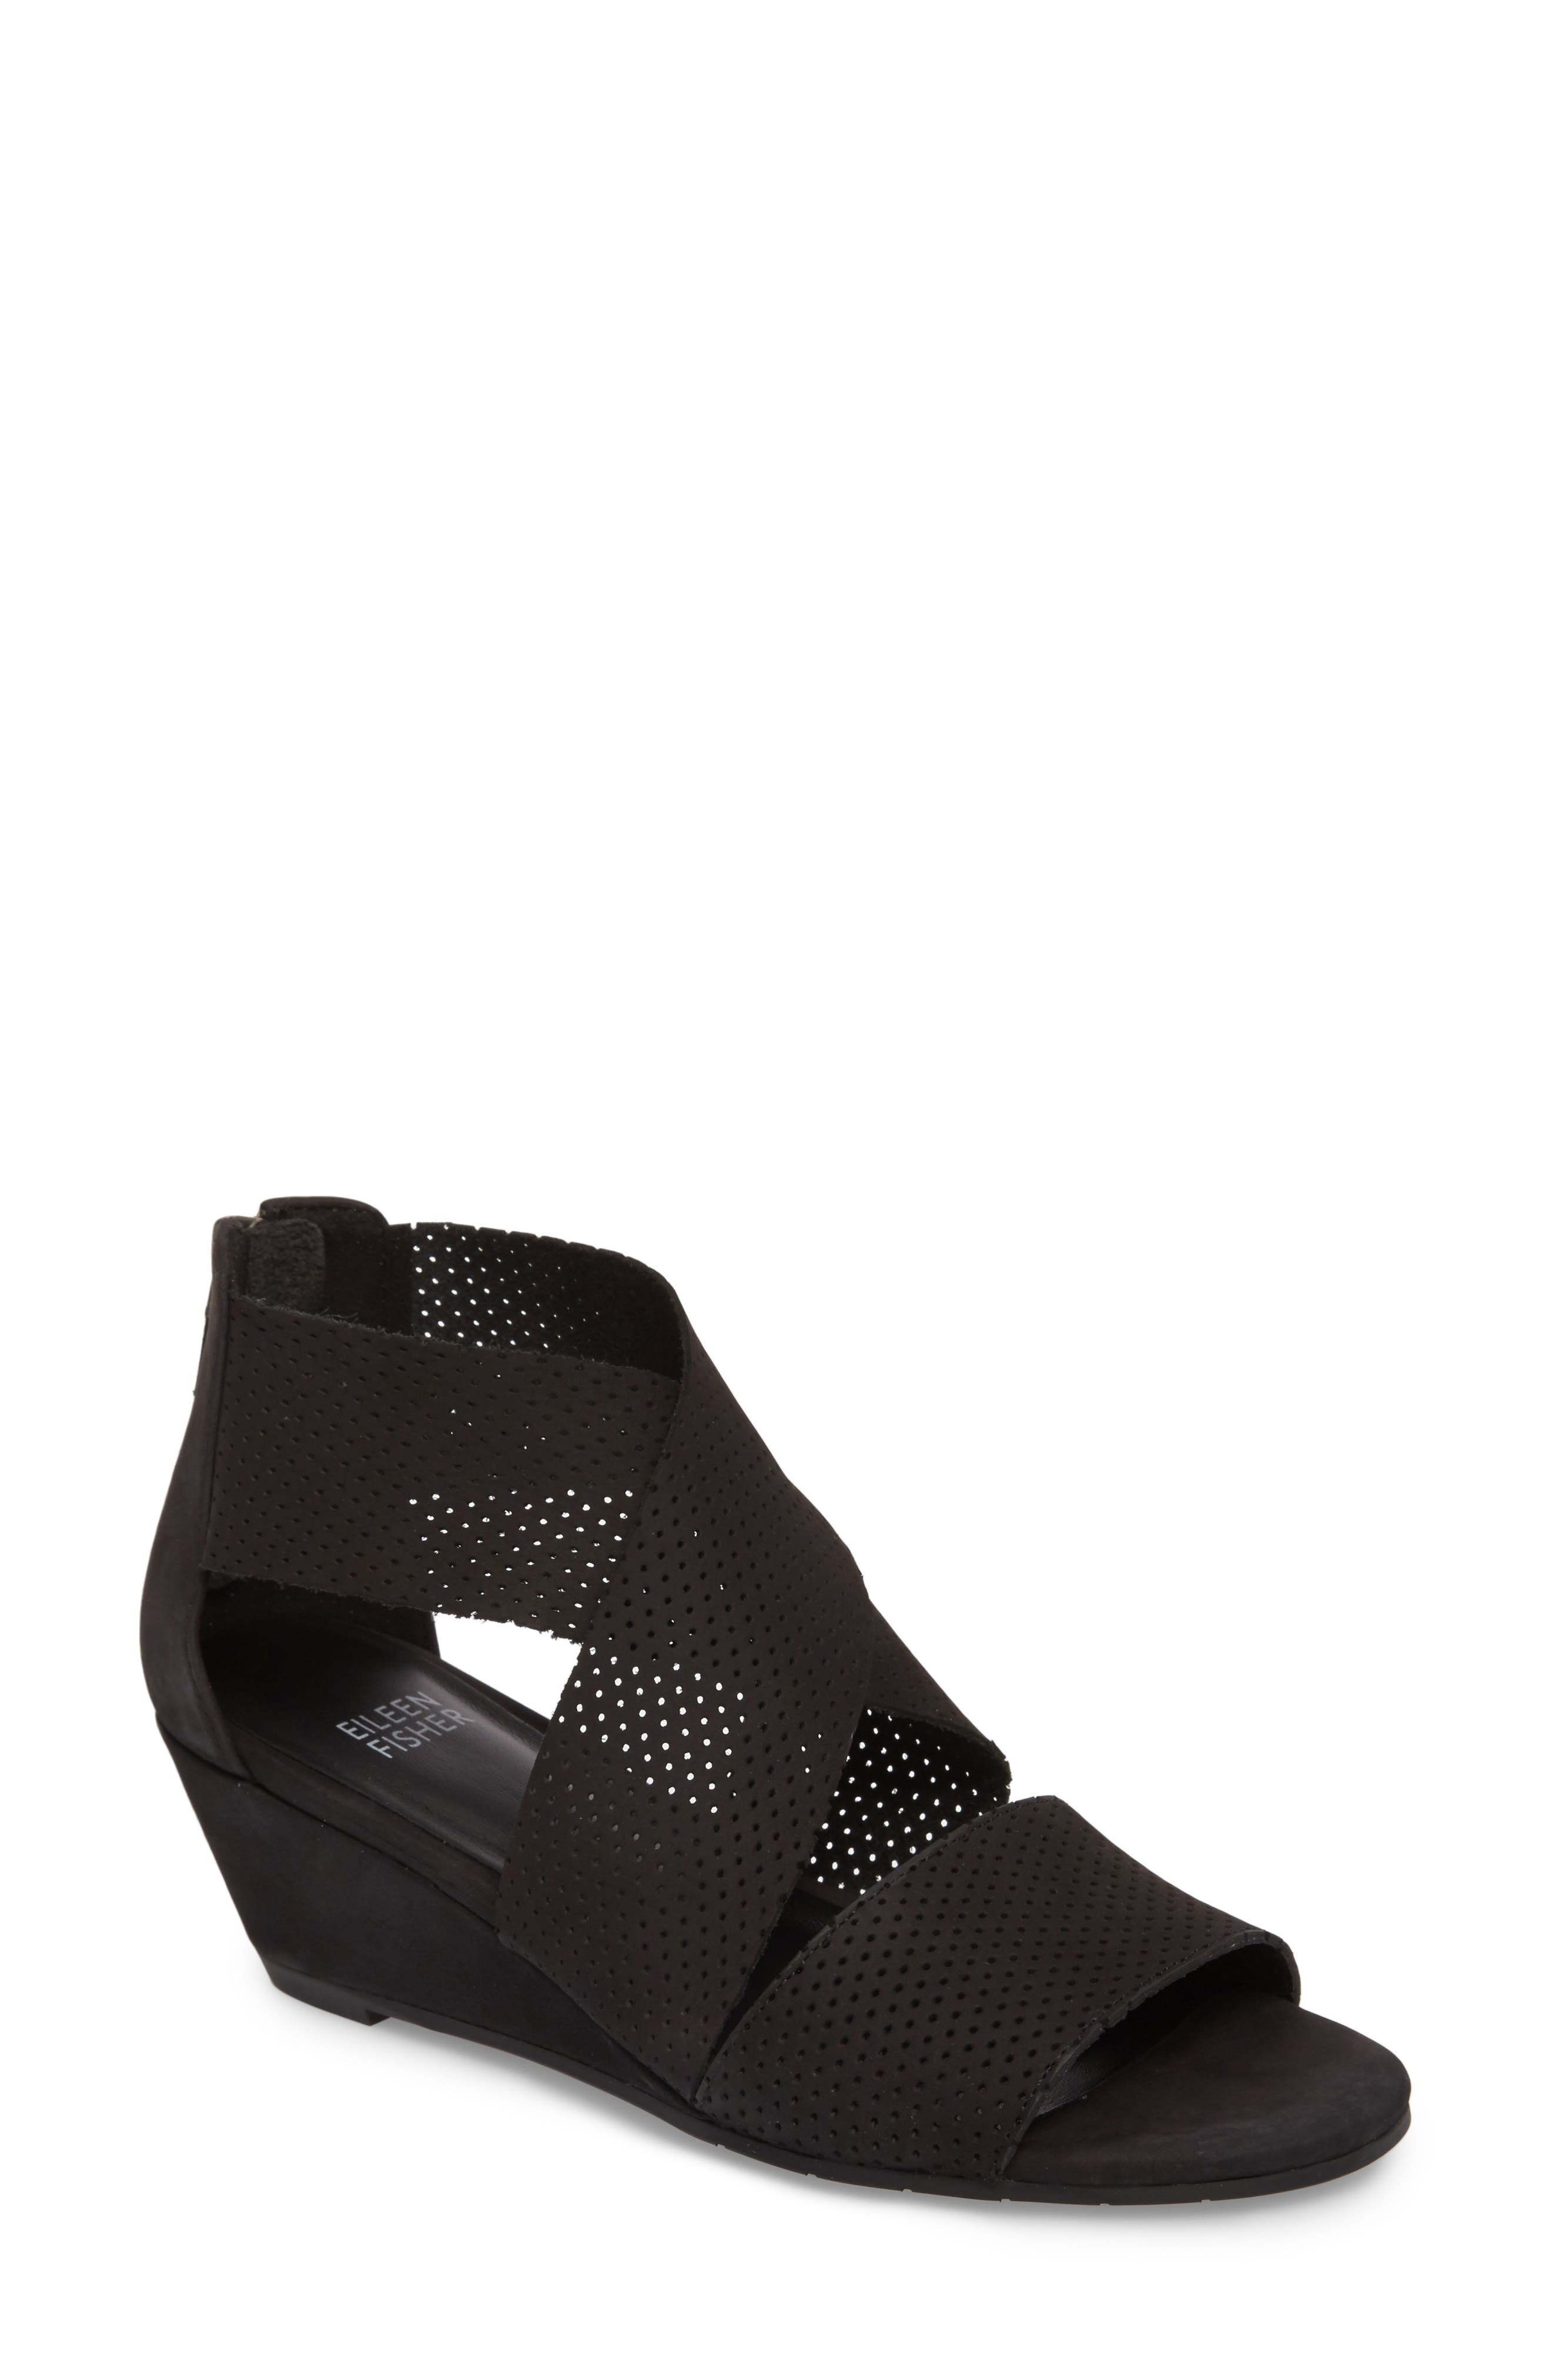 Eileen Fisher Kes Wedge Sandal (Women)